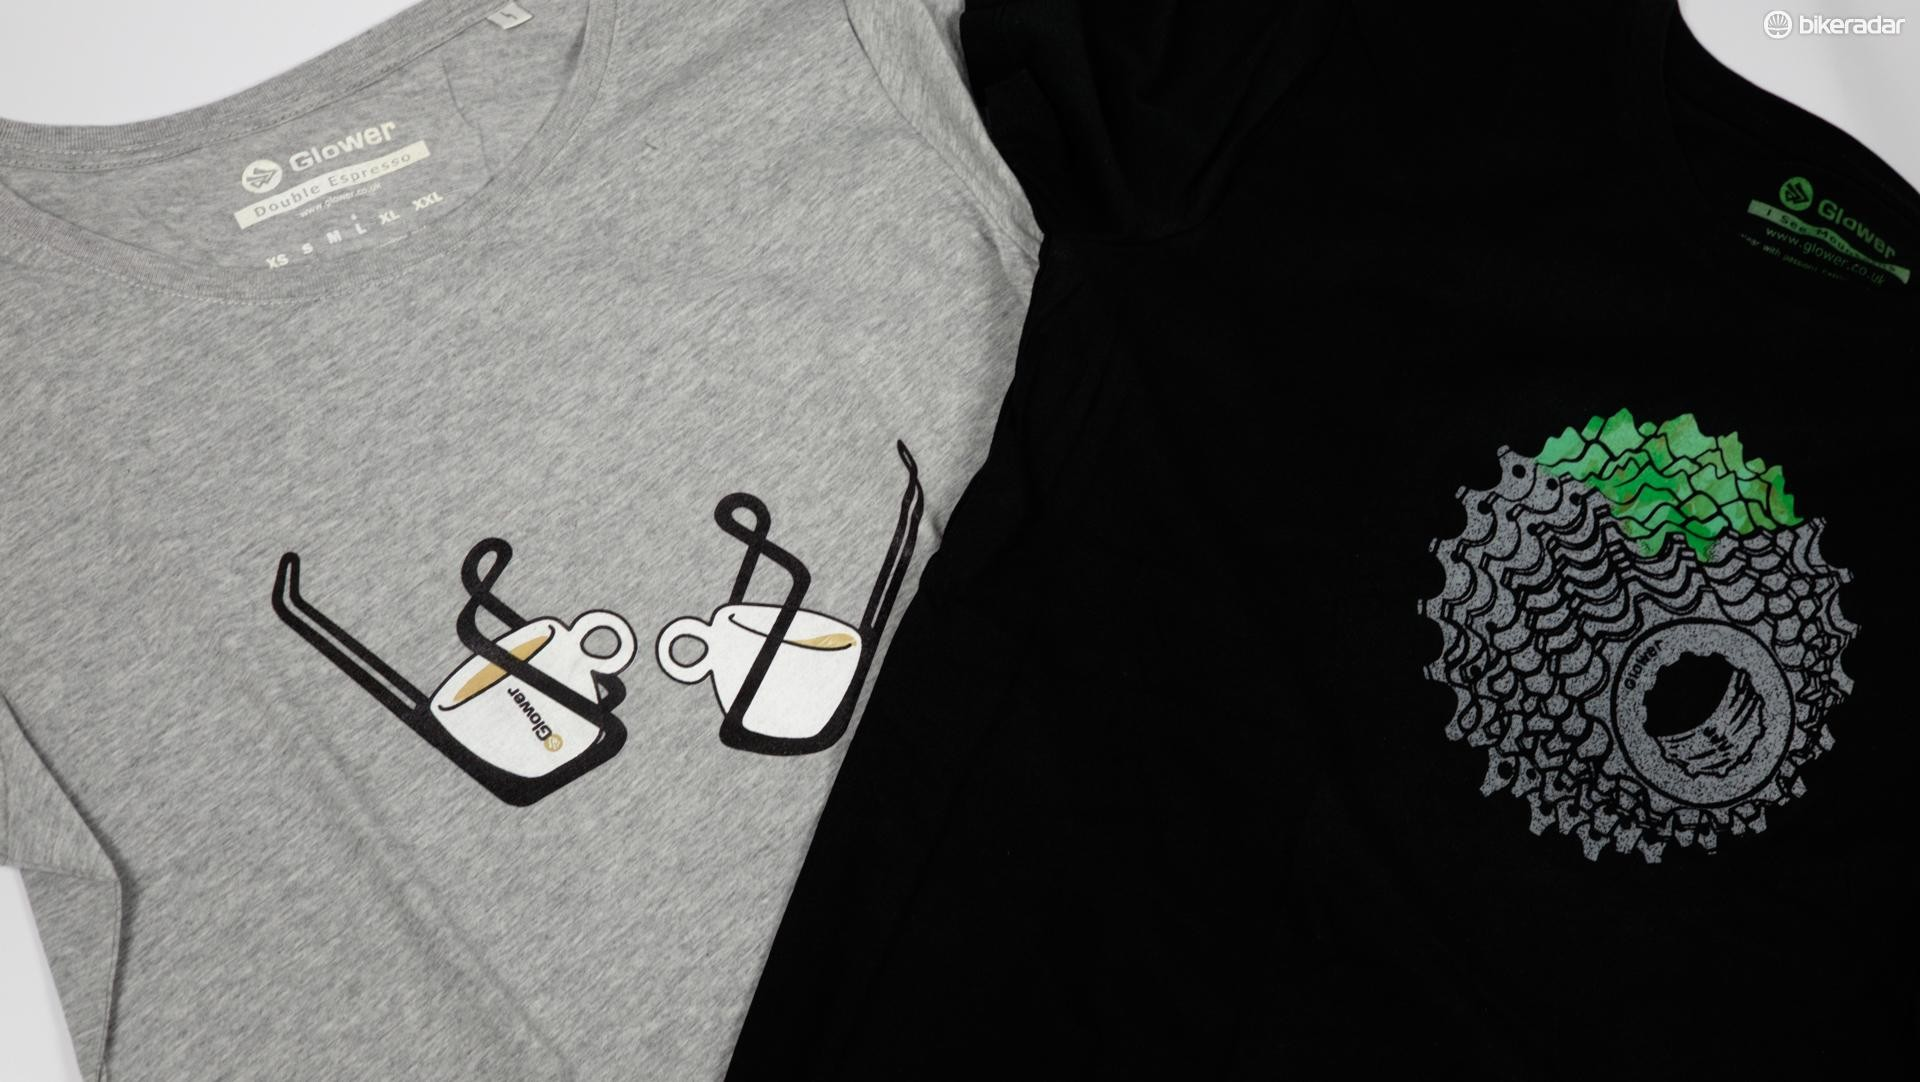 Glower Clothing makes men's and women's T-shirts and jumpers with designs inspired by cycling